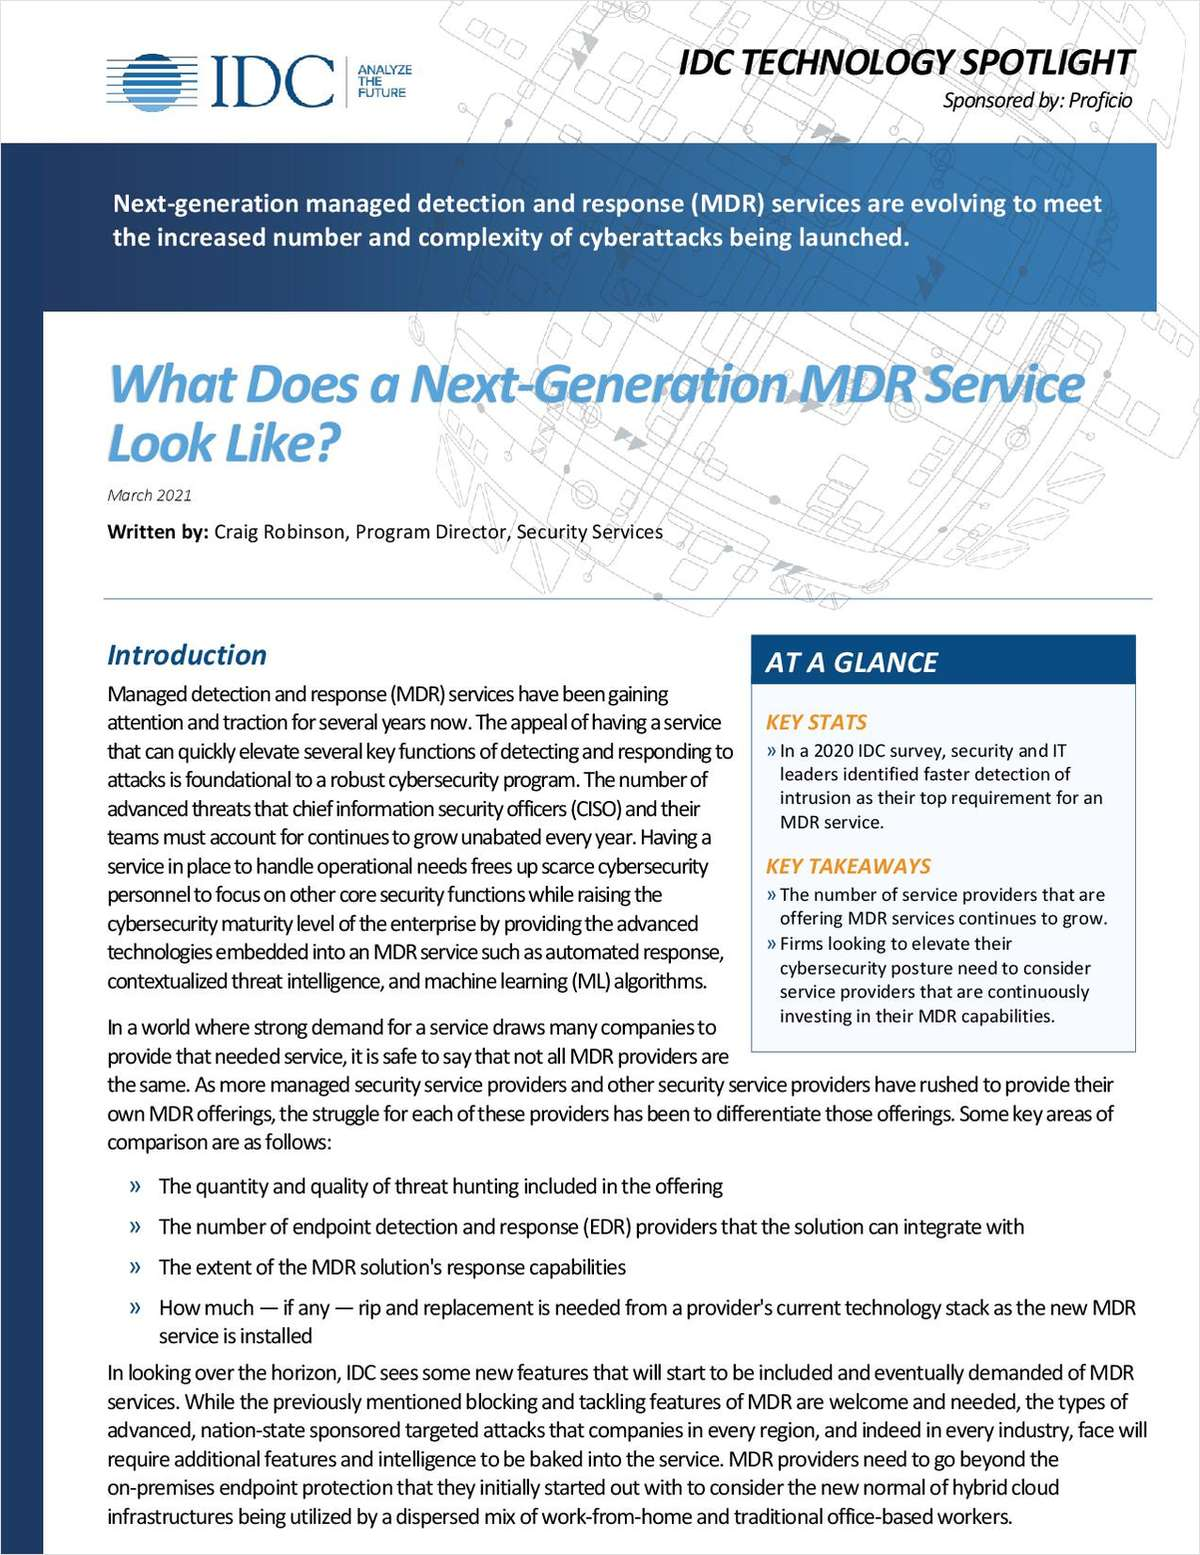 What Does a Next-Generation MDR Service Look Like? -  IDC Technology Spotlight